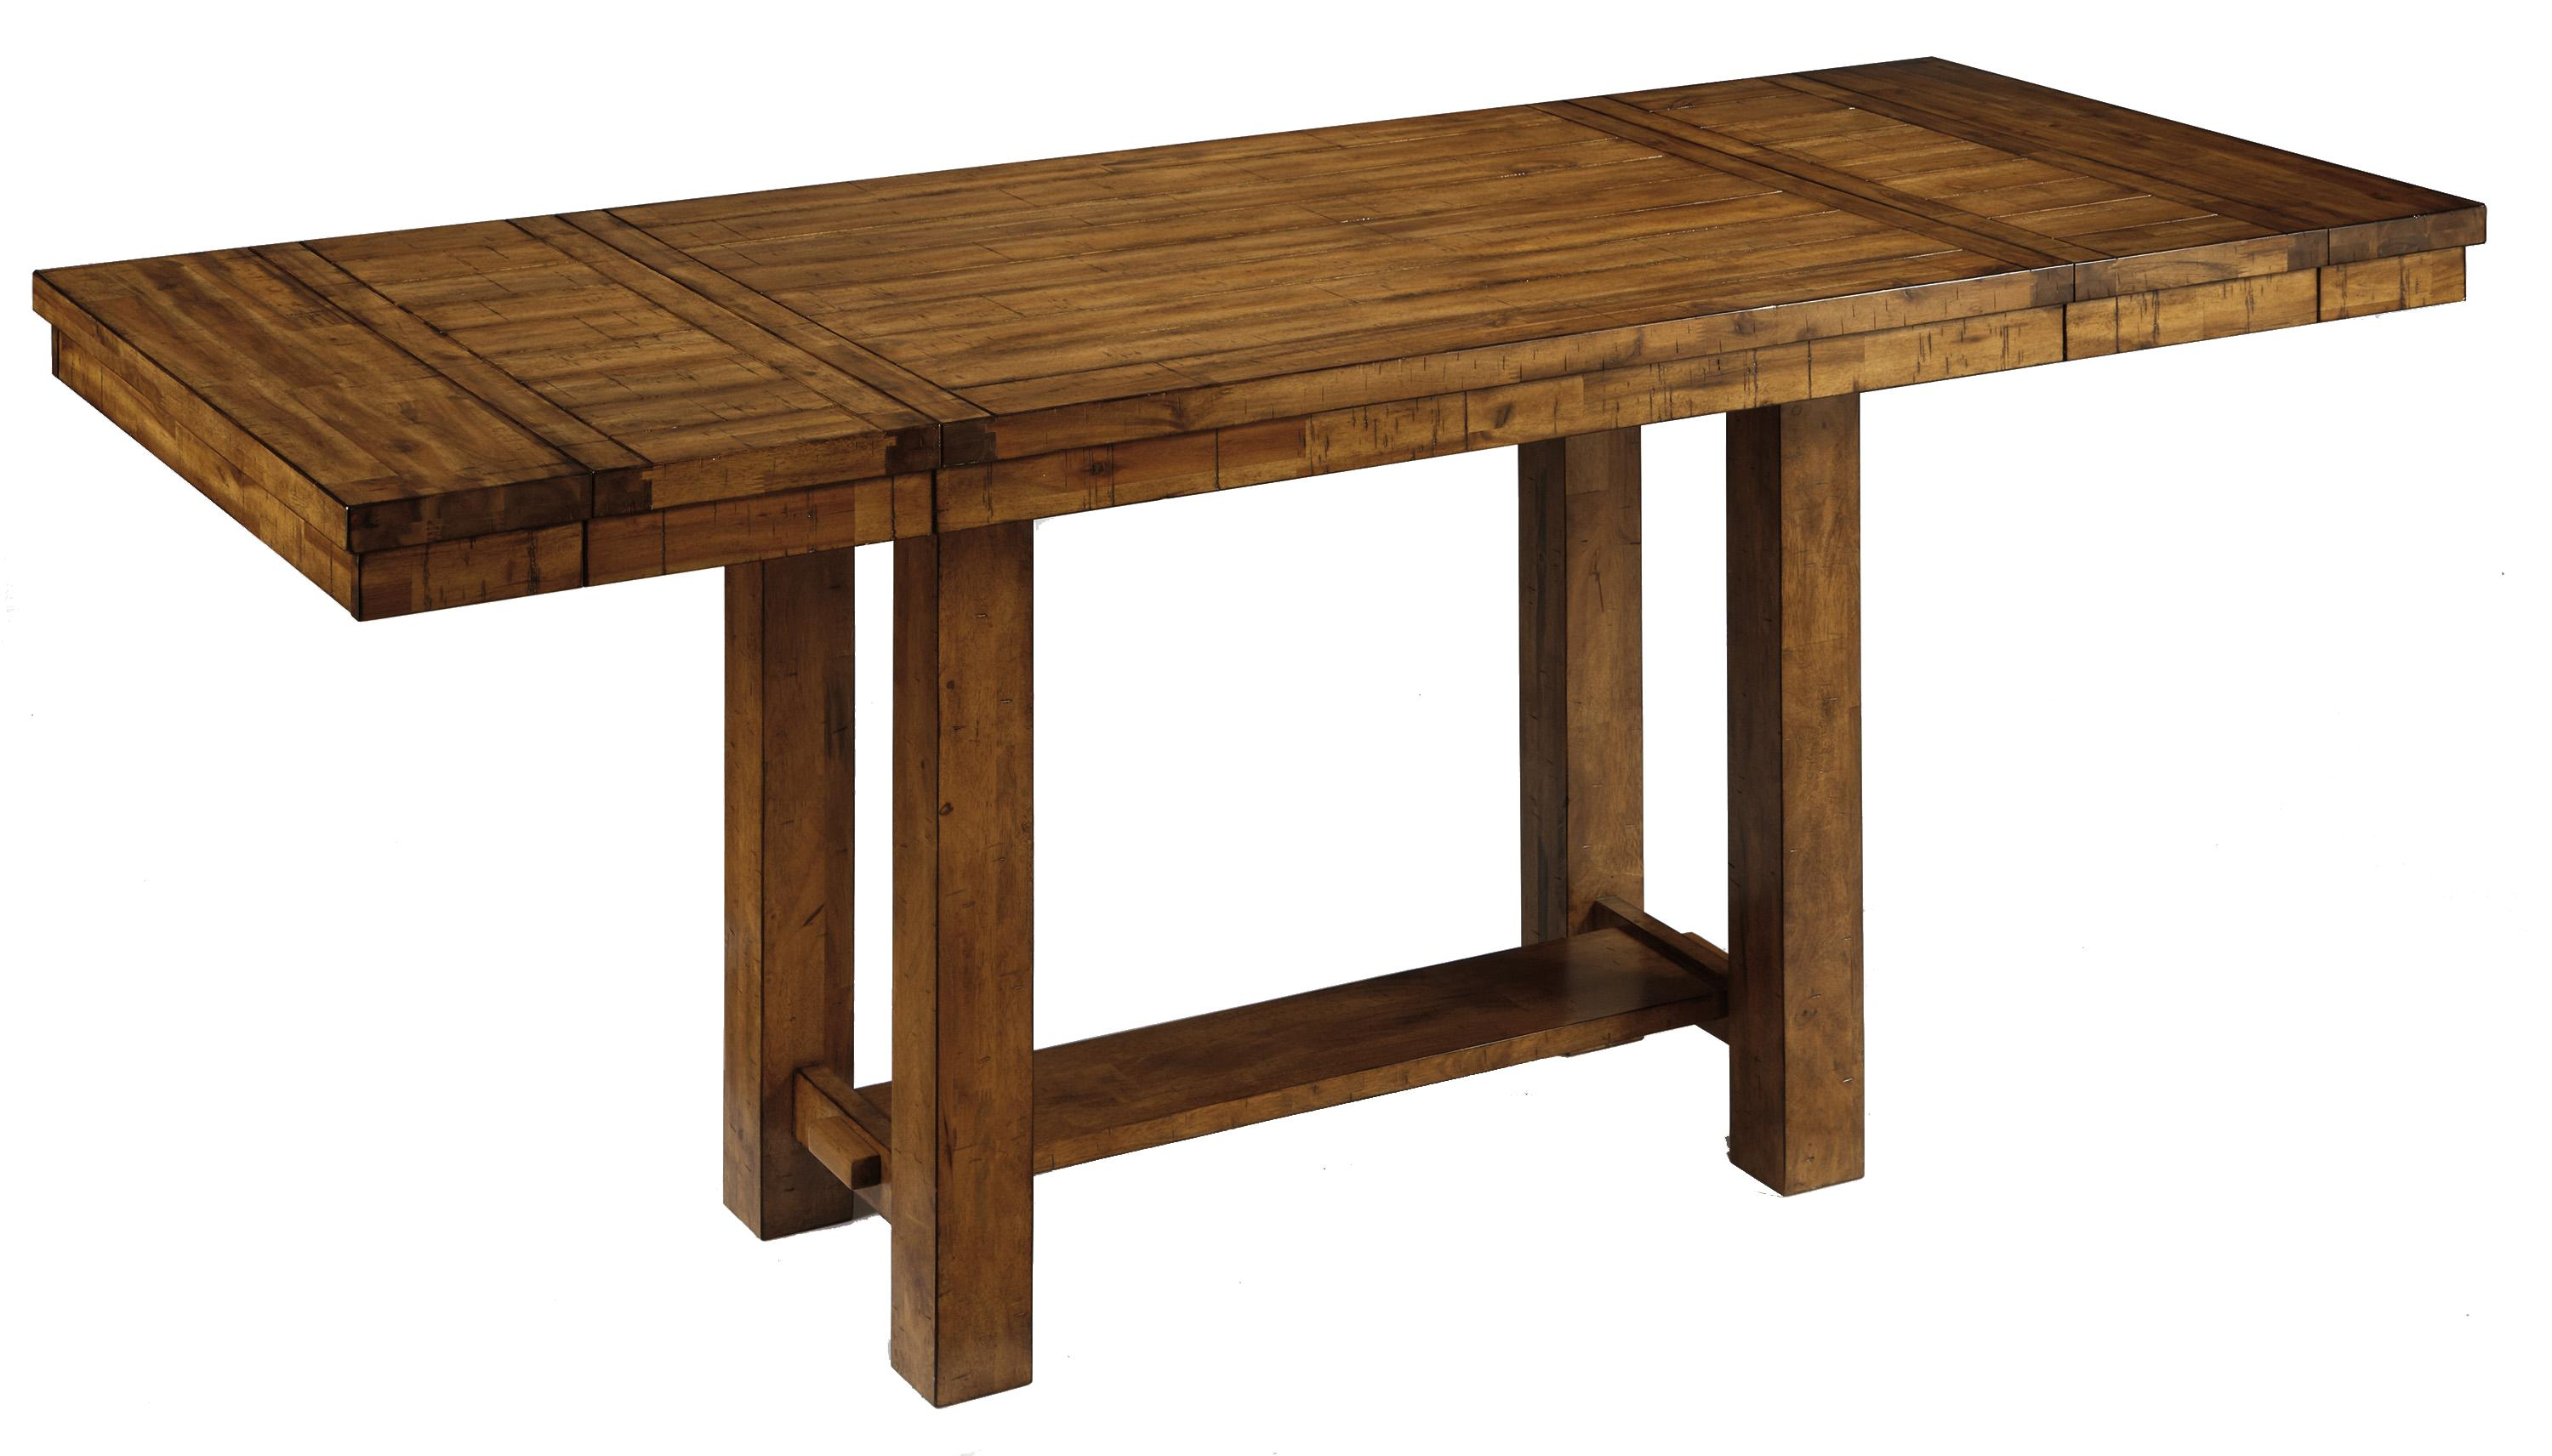 Signature Design by Ashley Krinden Rectangular Counter Extension Table - Item Number: D653-32